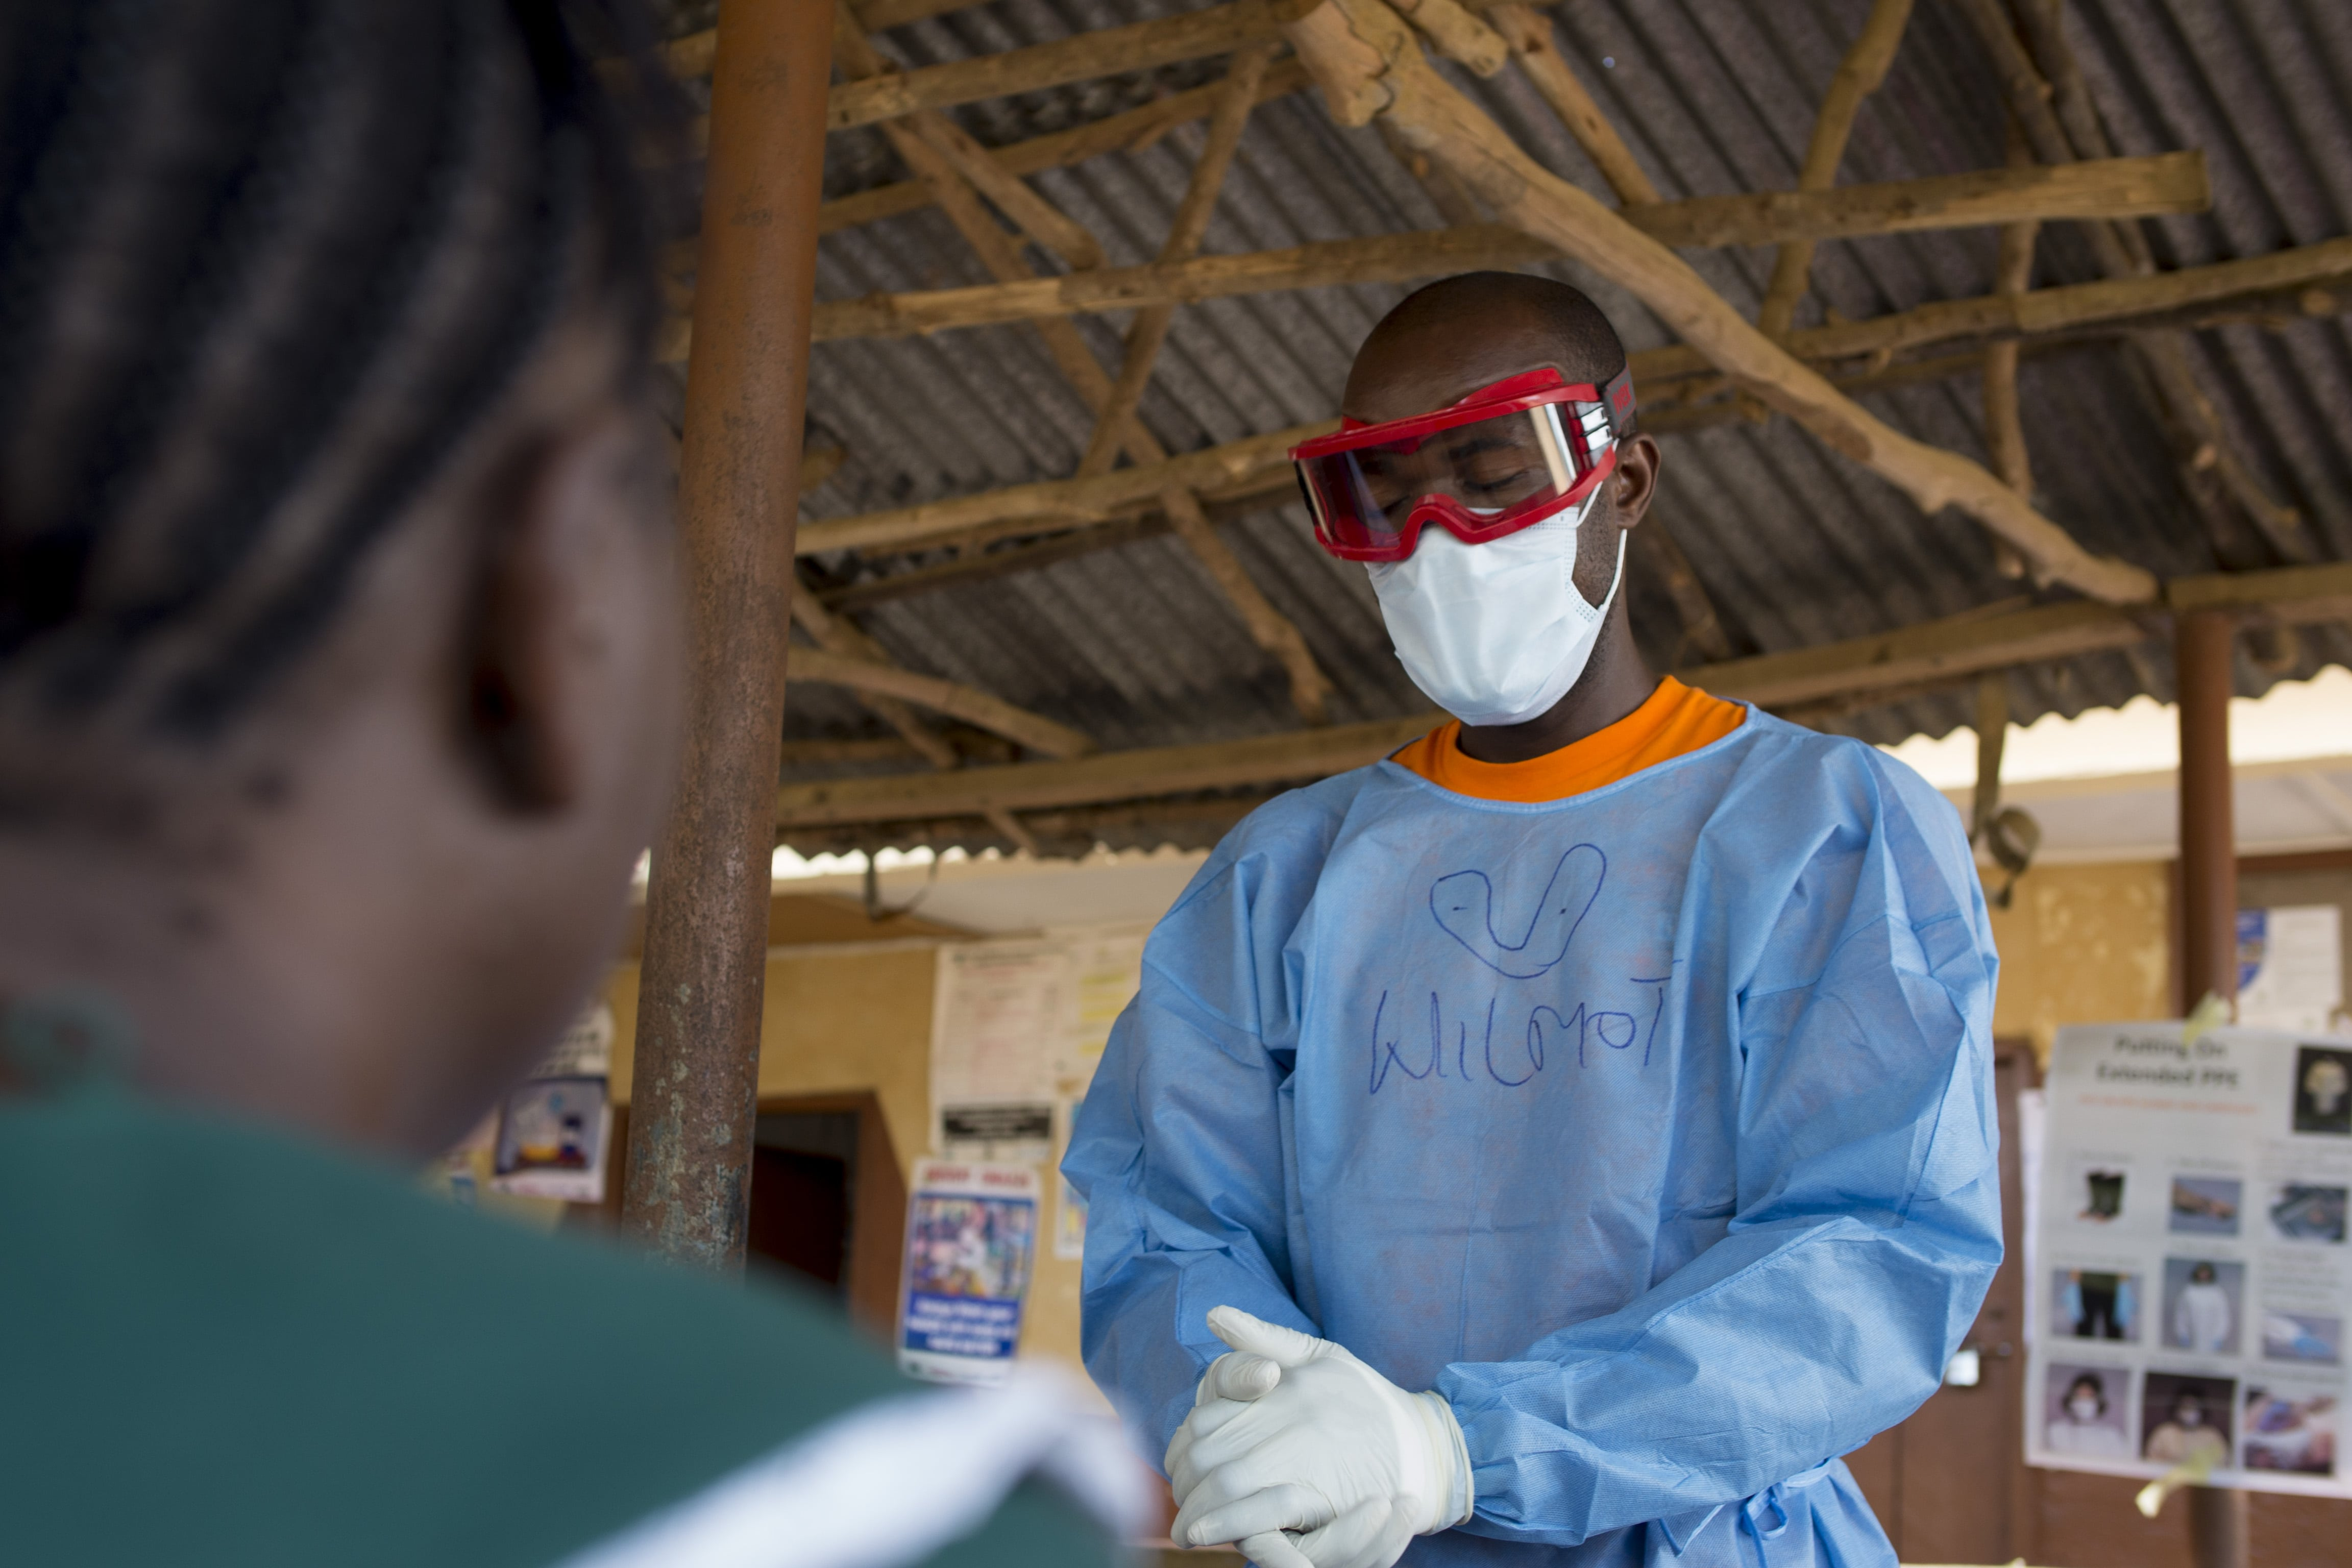 Infection prevention and control (lPC) training for staff faced with Ebola